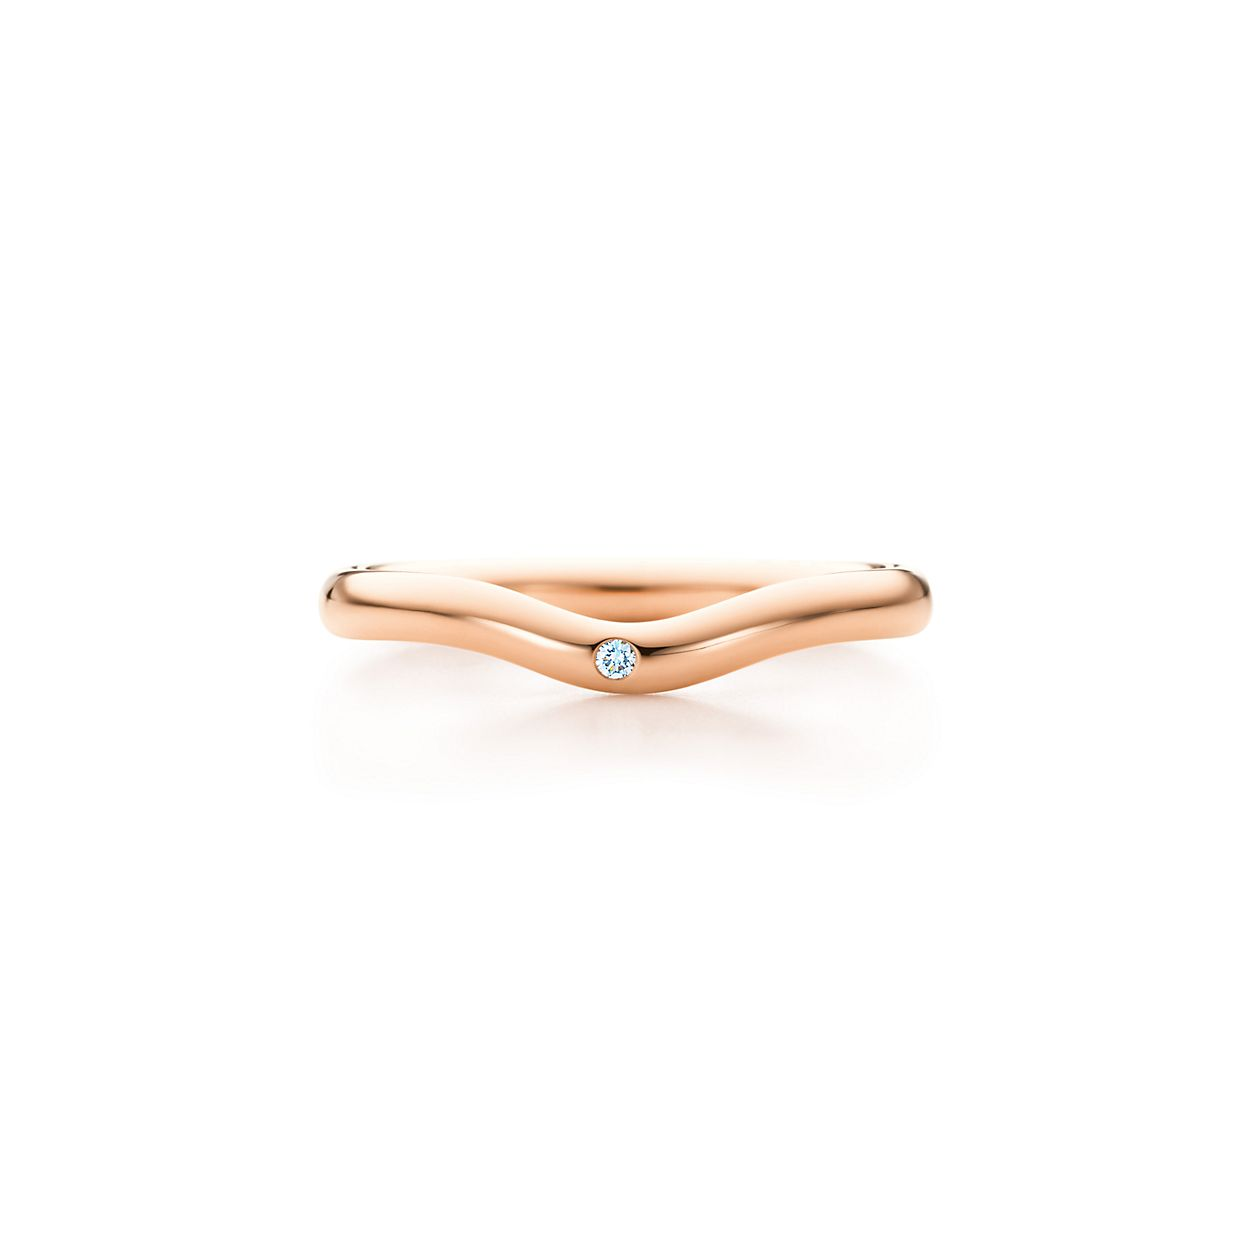 Elsa Peretti® wedding band ring with a diamond in 18k rose gold, 2 ...